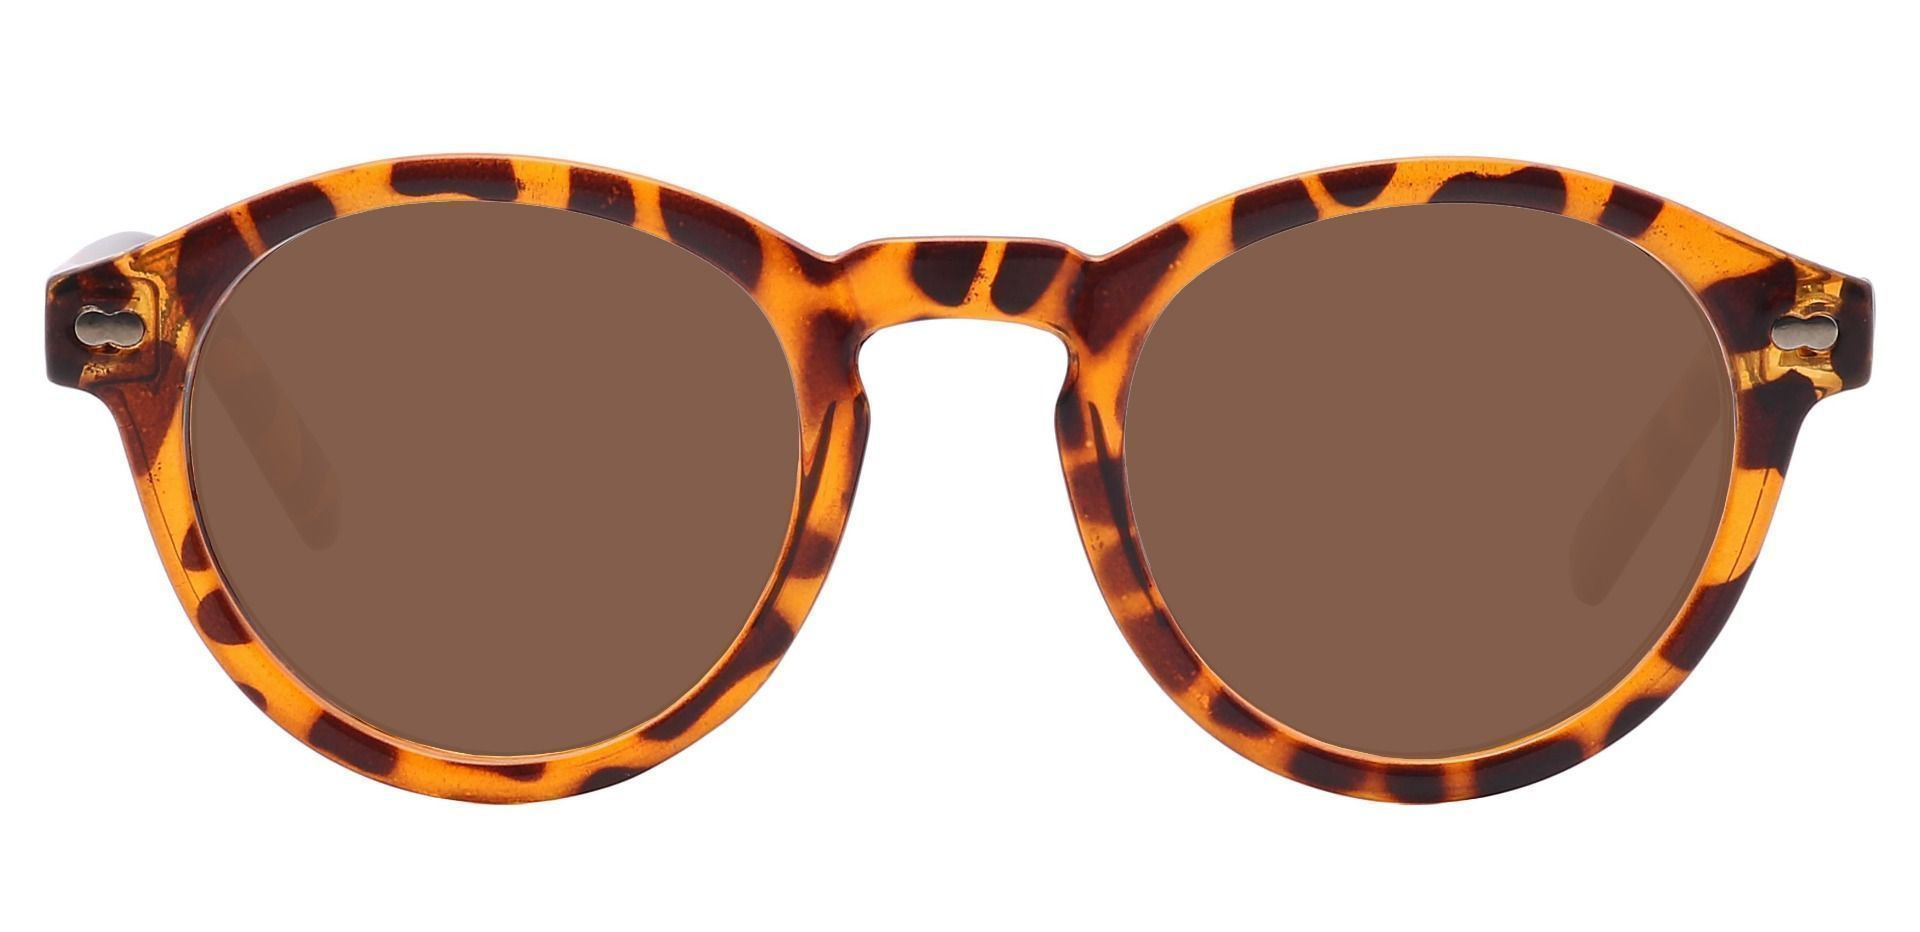 Vee Round Prescription Sunglasses - Brown Frame With Brown Lenses